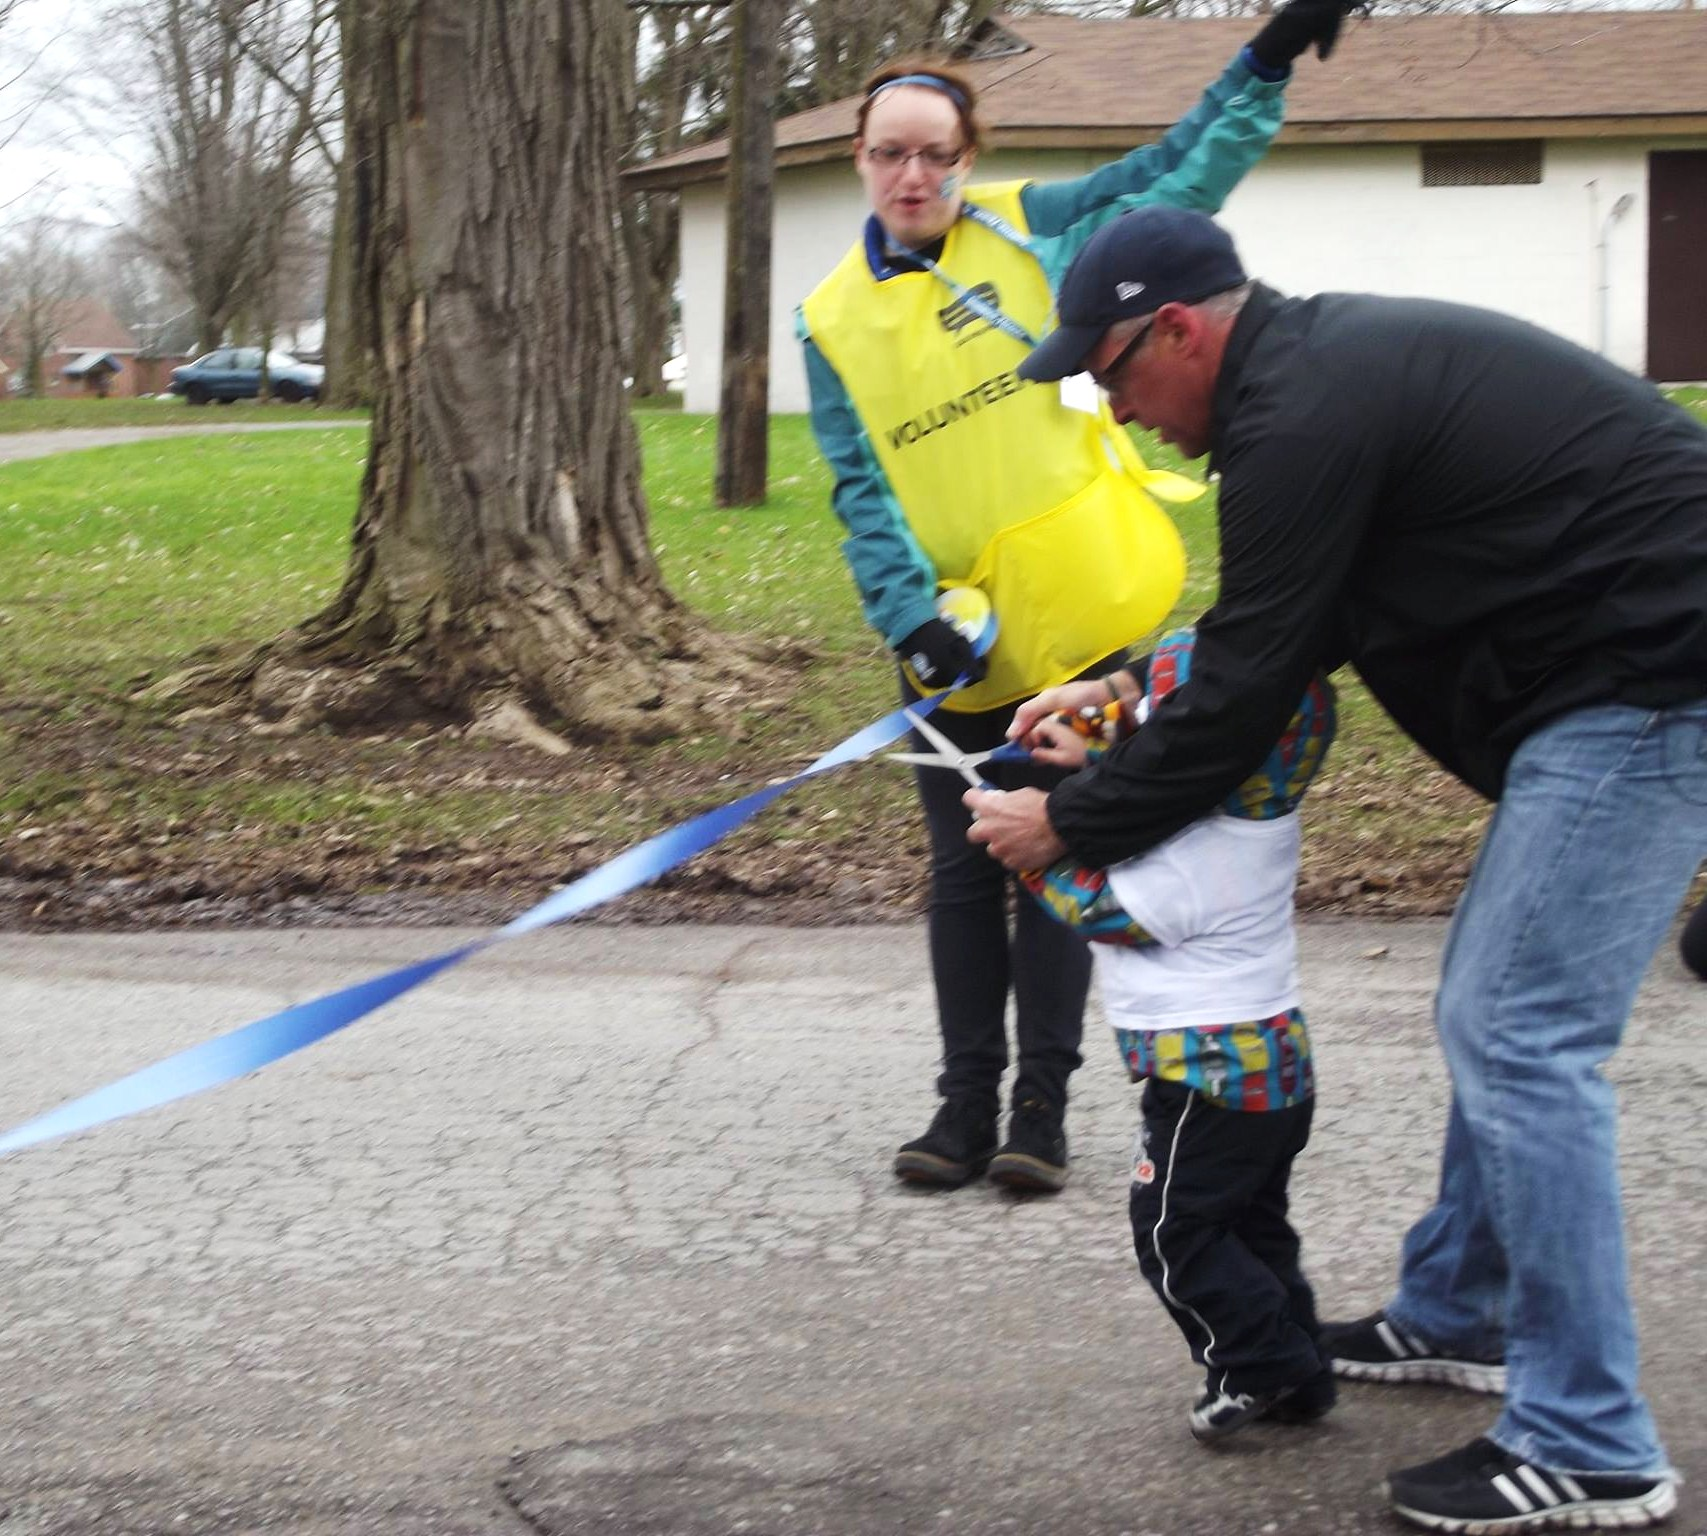 David Pogue of Team 55 and his grandson cut the blue ribbon to mark the official start of the walk and honour his son Mitchell